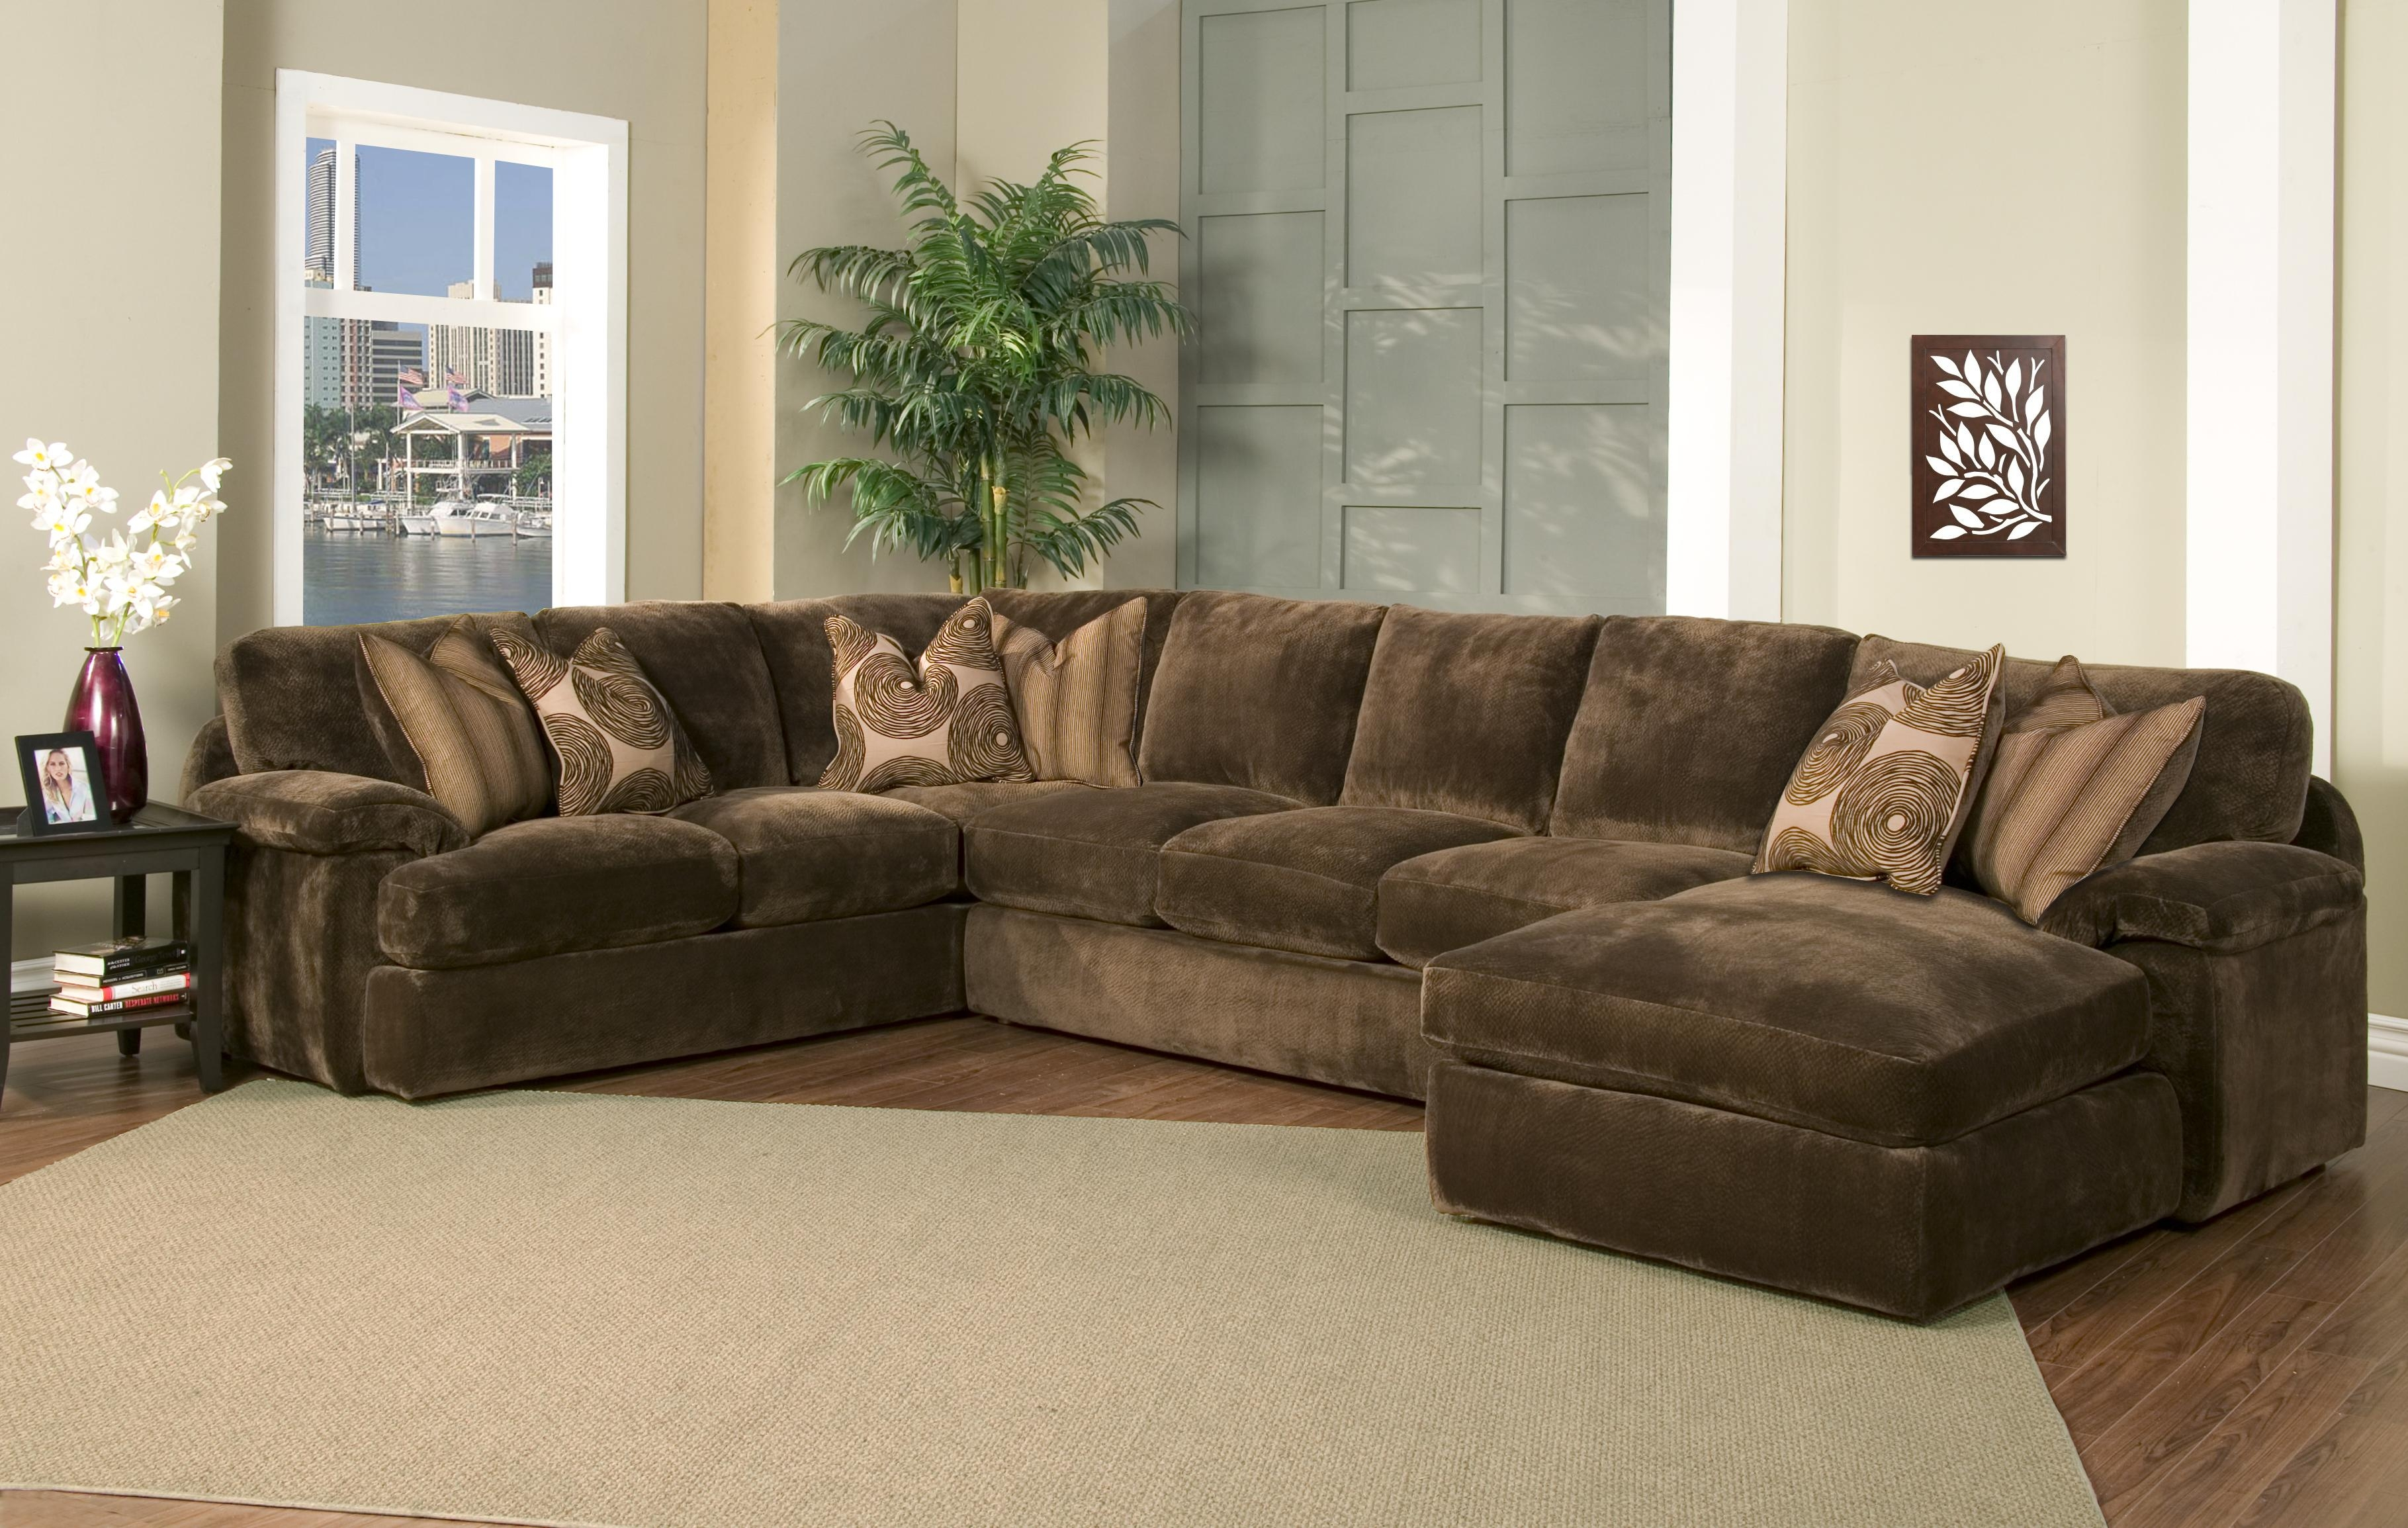 Michaels Furniture Portland – Home Design Ideas And Pictures In Goose Down Sectional Sofa (View 5 of 15)